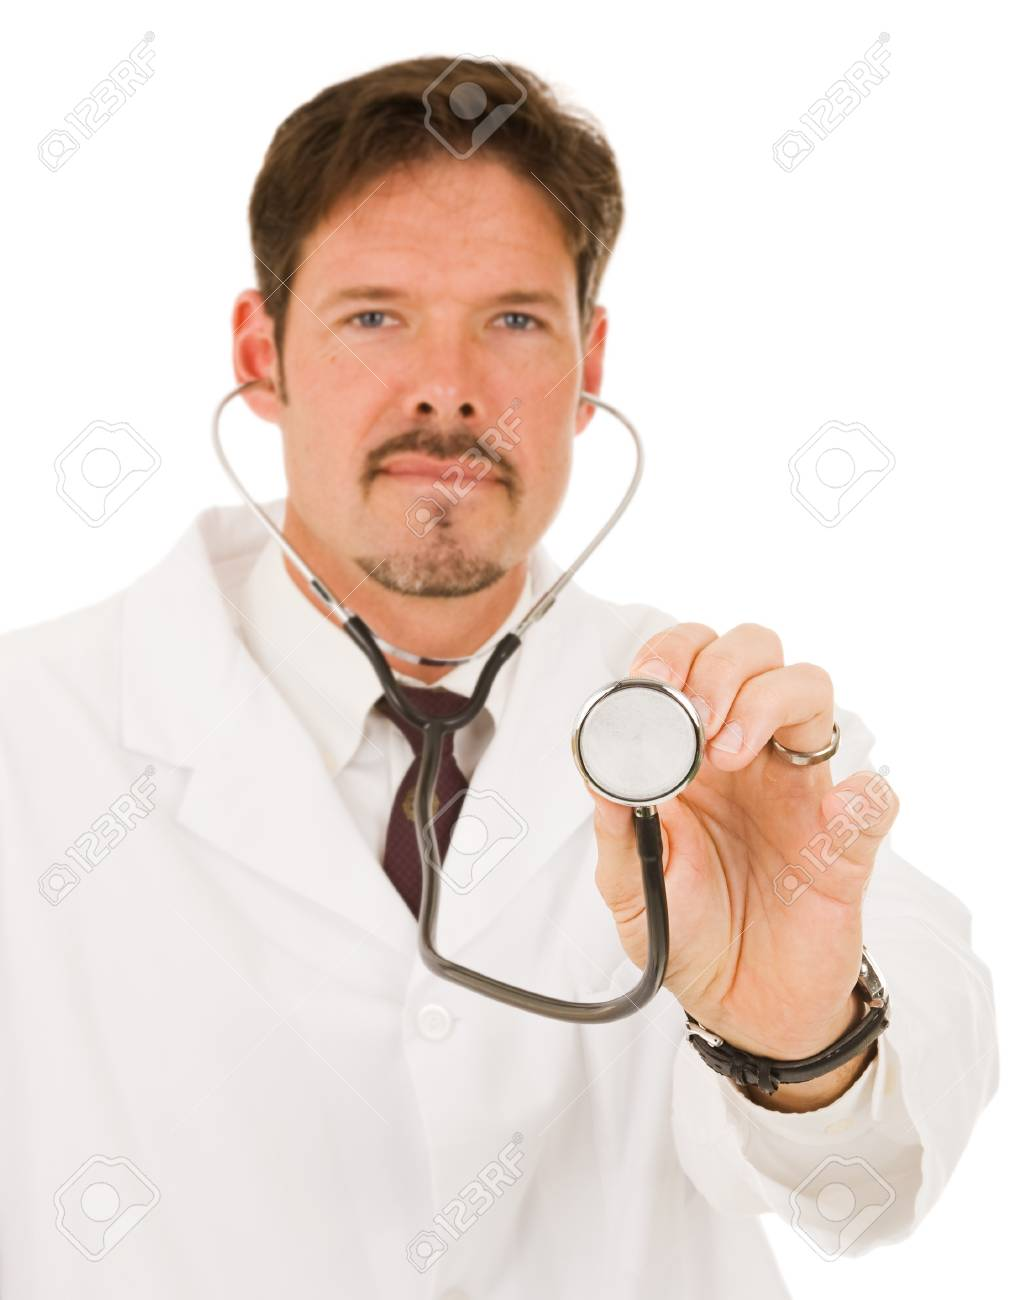 Doctor holding out his stethoscope.  Shallow depth of field with focus on hand holding the end of stethoscope. Stock Photo - 4254103